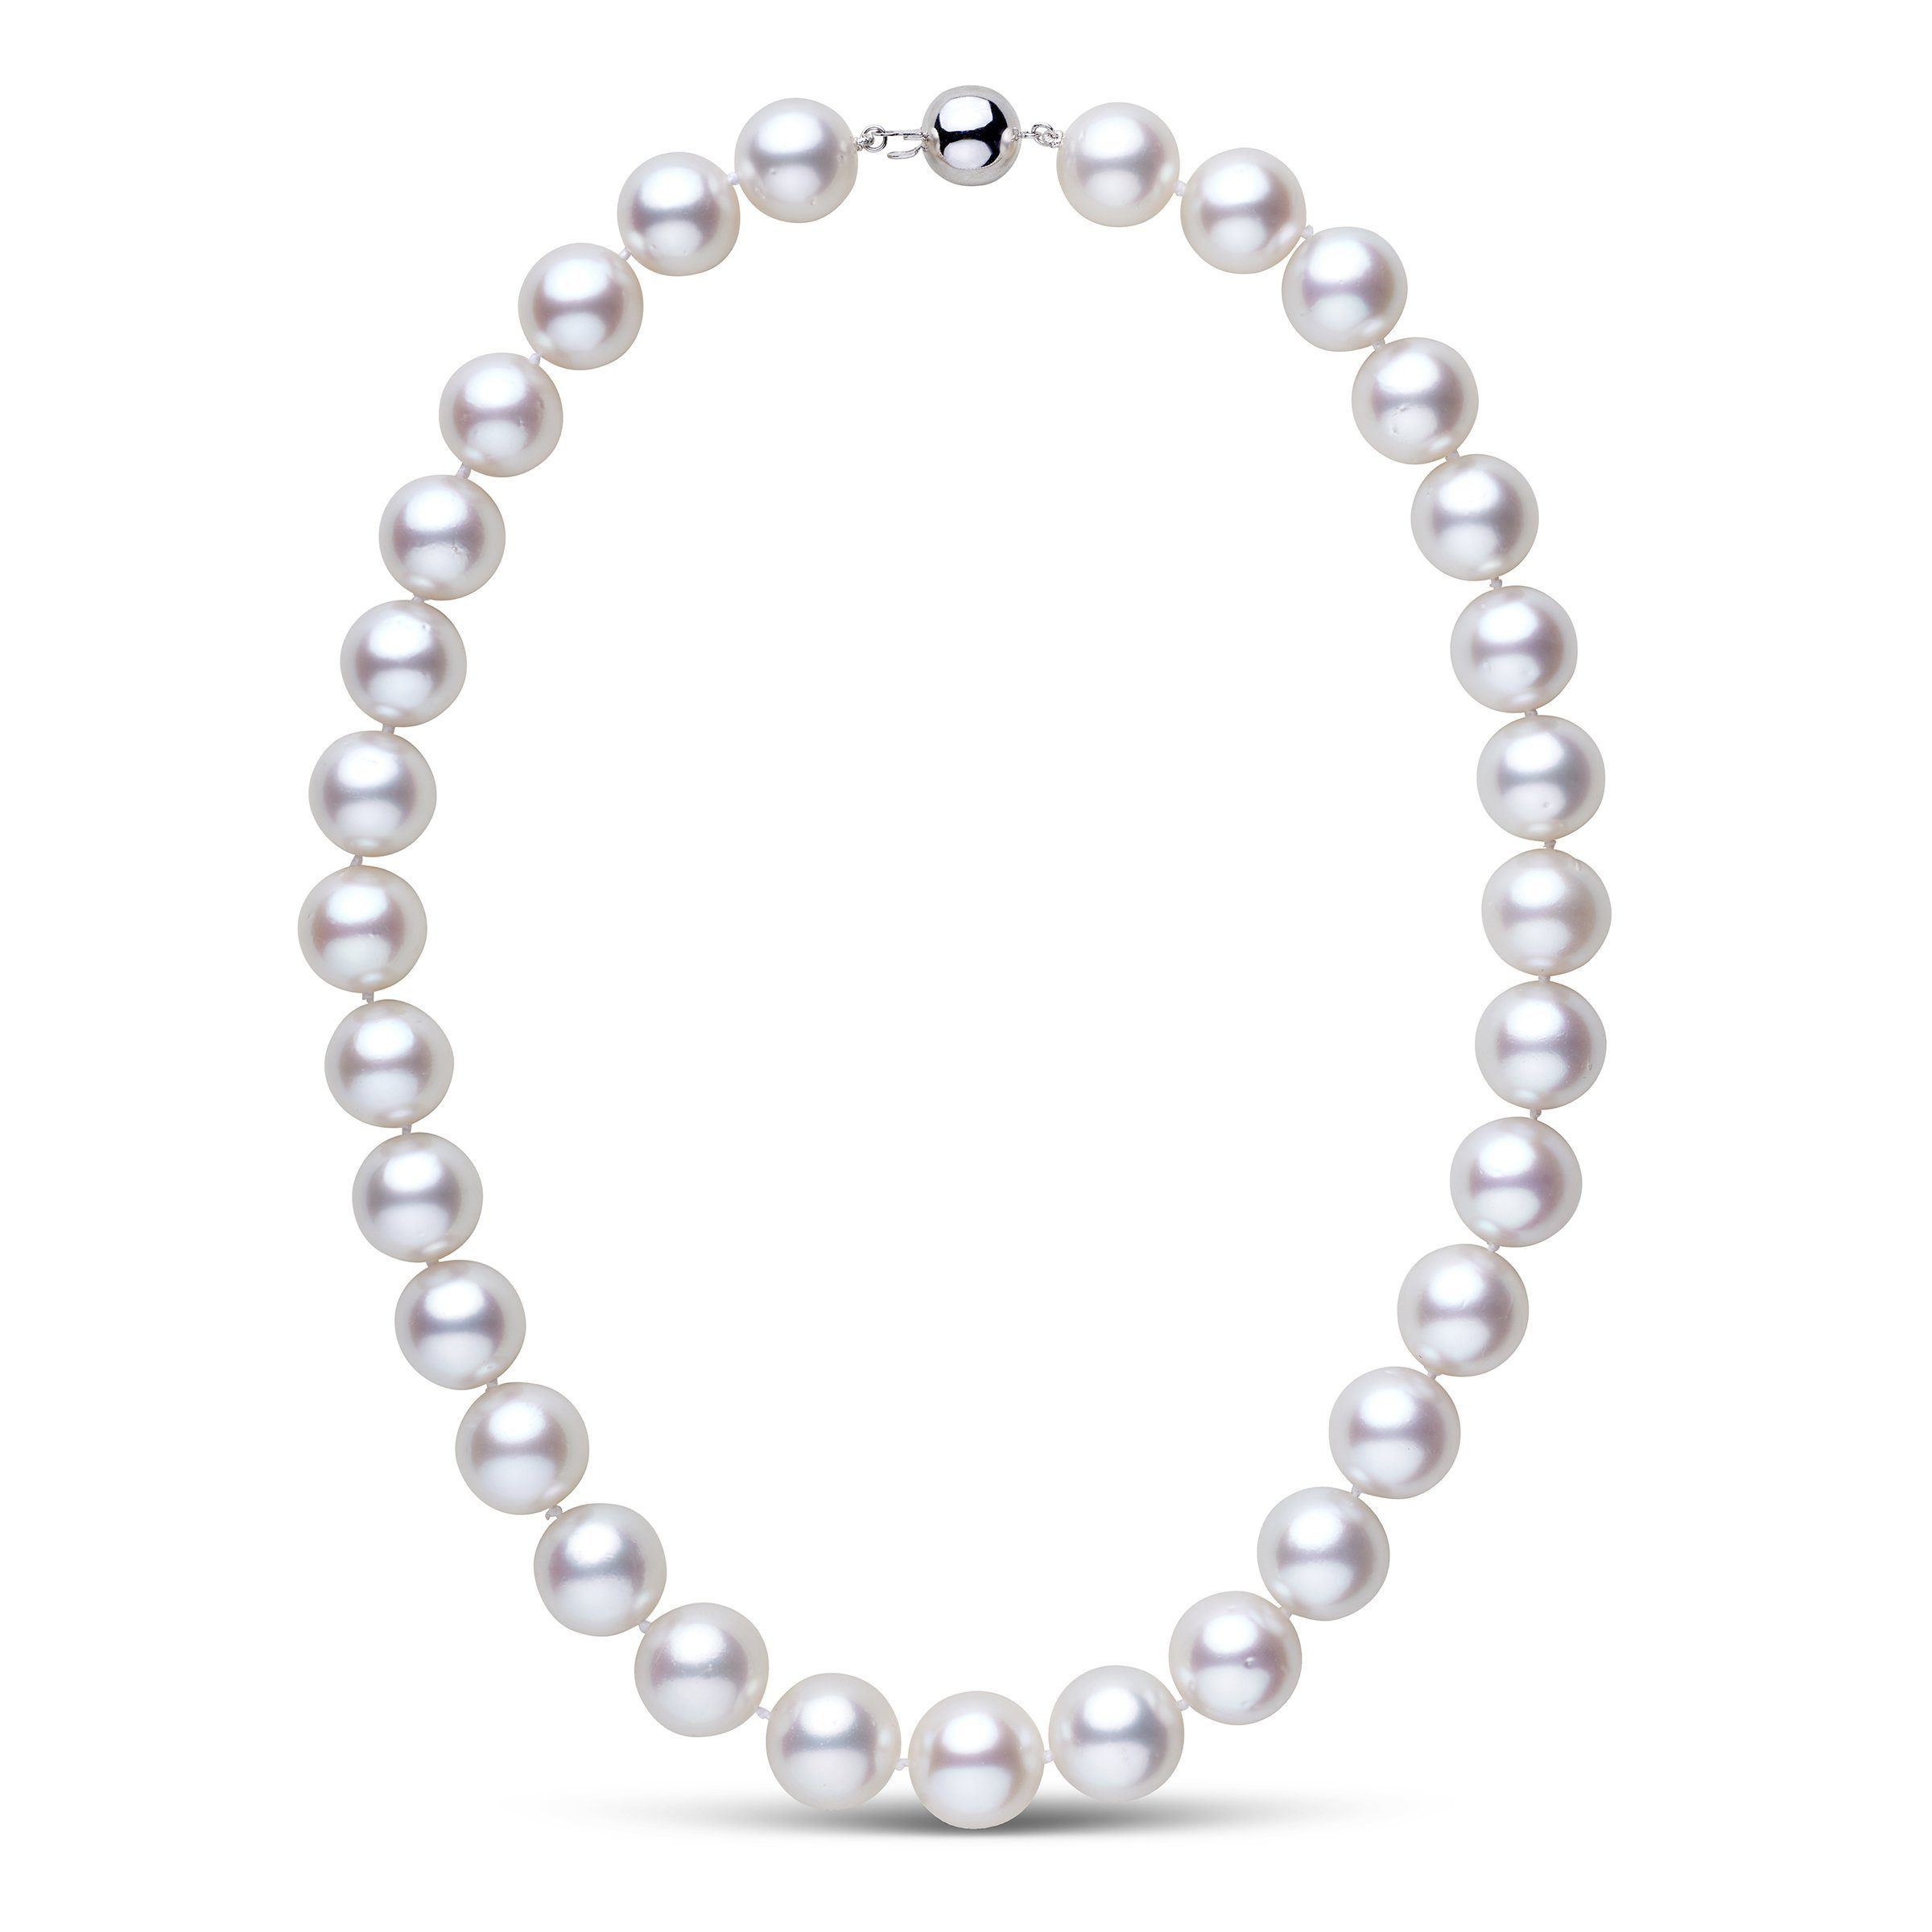 Grand Luminous - White South Sea Necklace